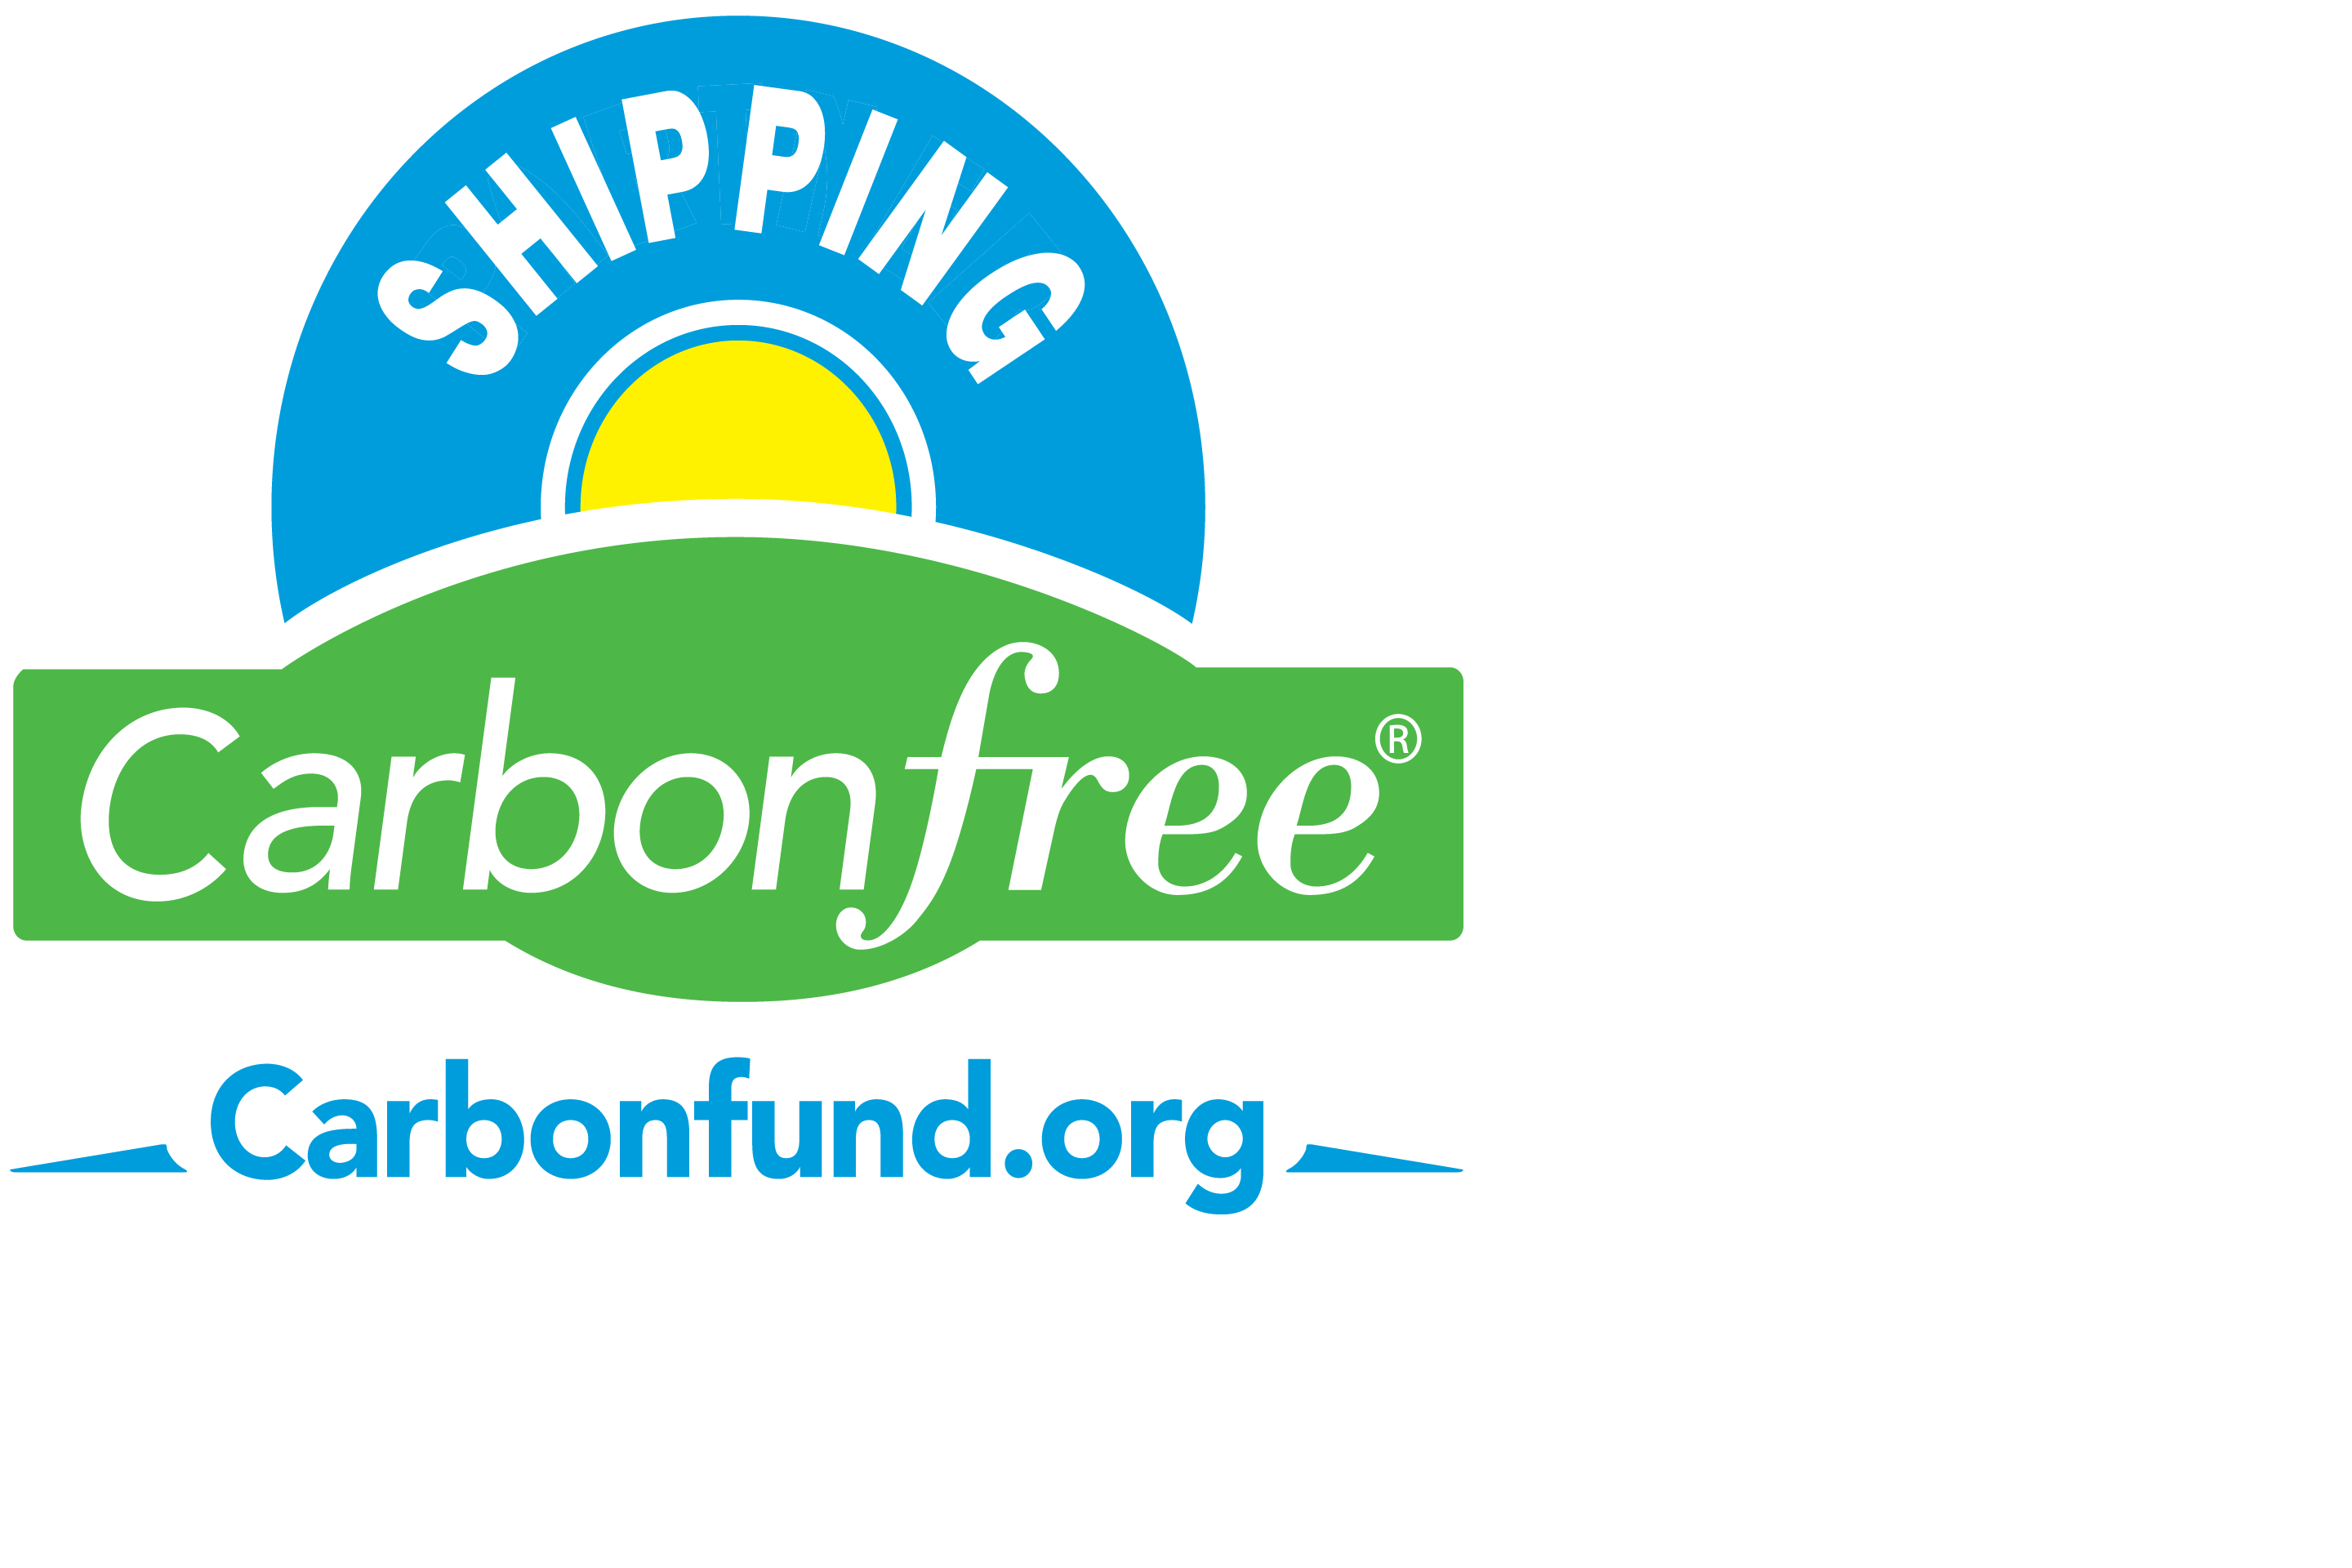 Quest Overland shipping is Carbon free